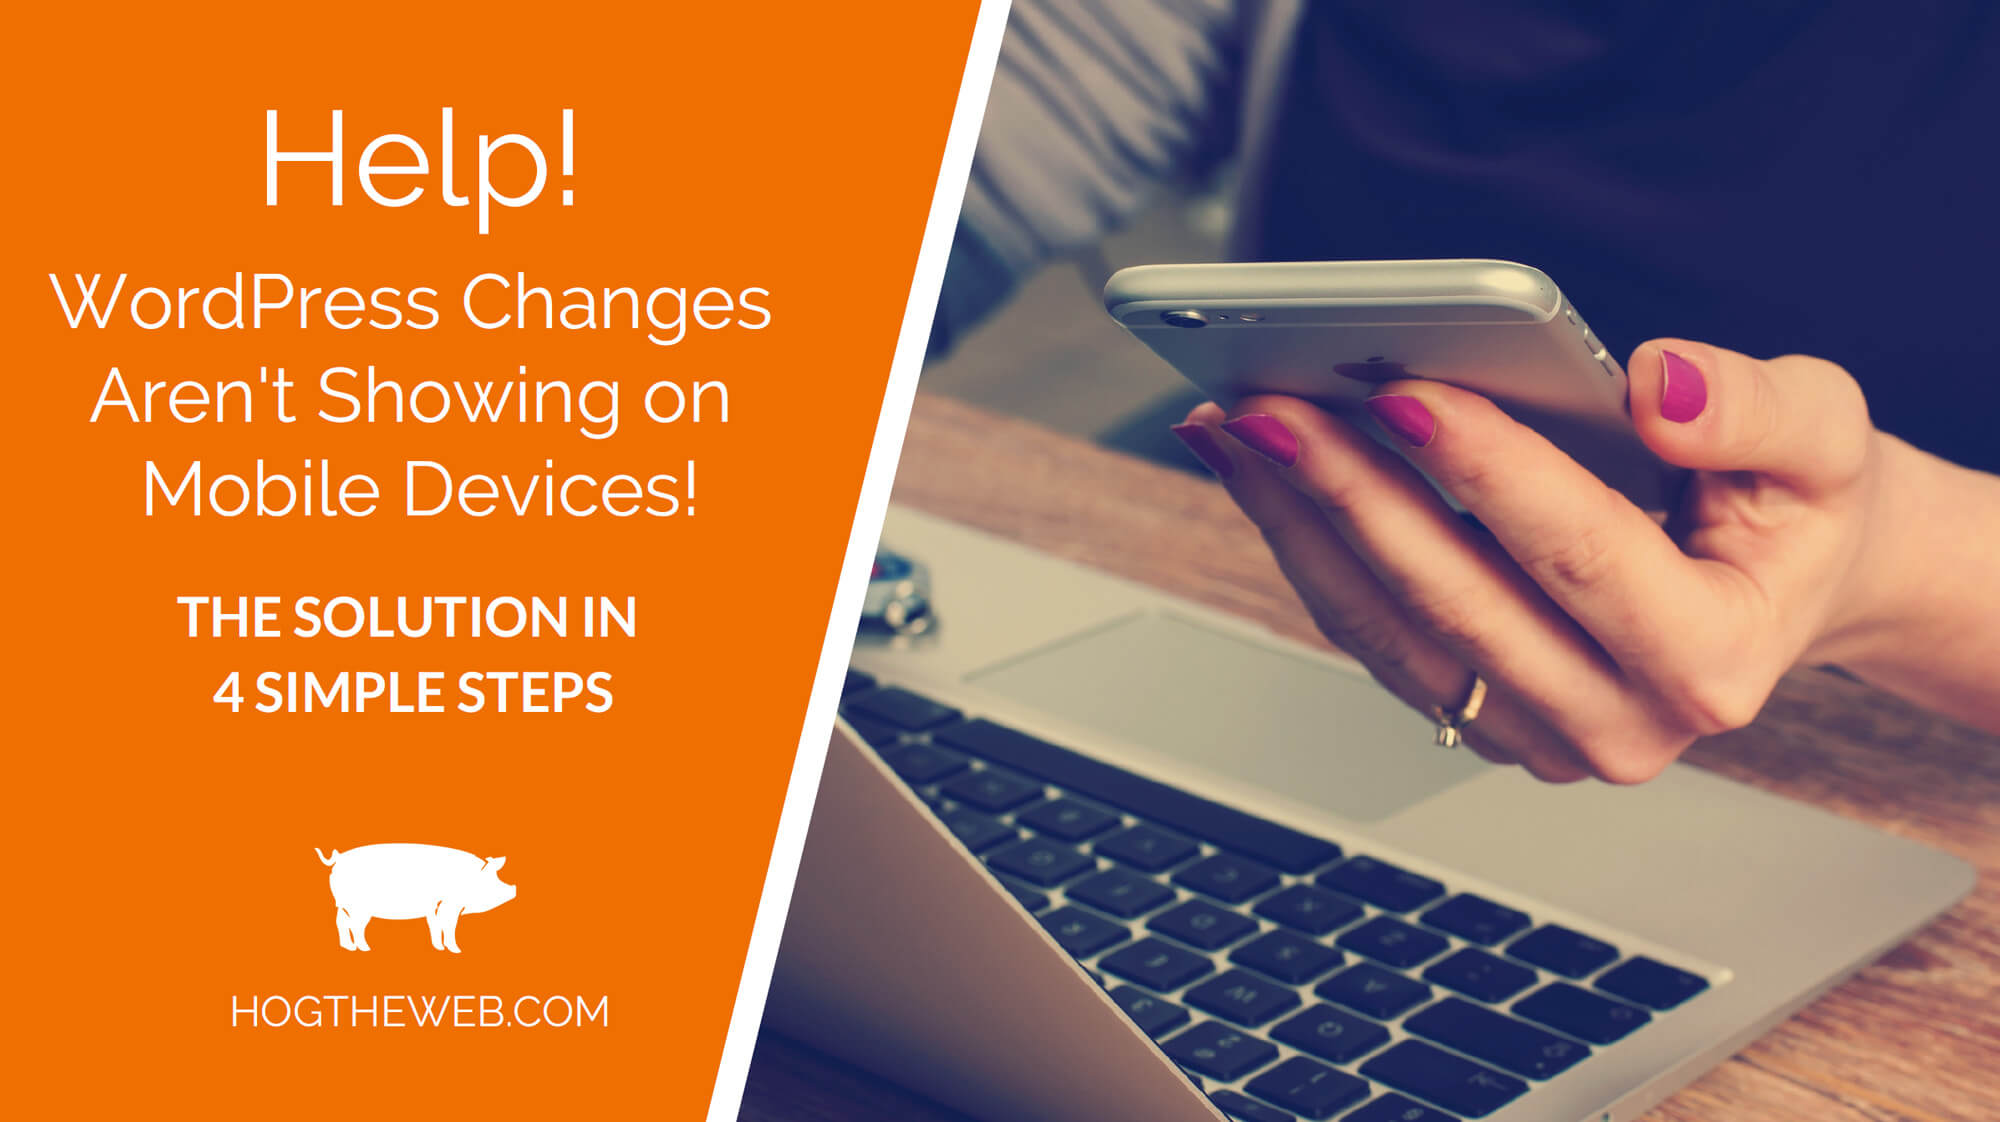 WordPress Changes Not Showing on Mobile? > Fix it with 4 Simple Steps